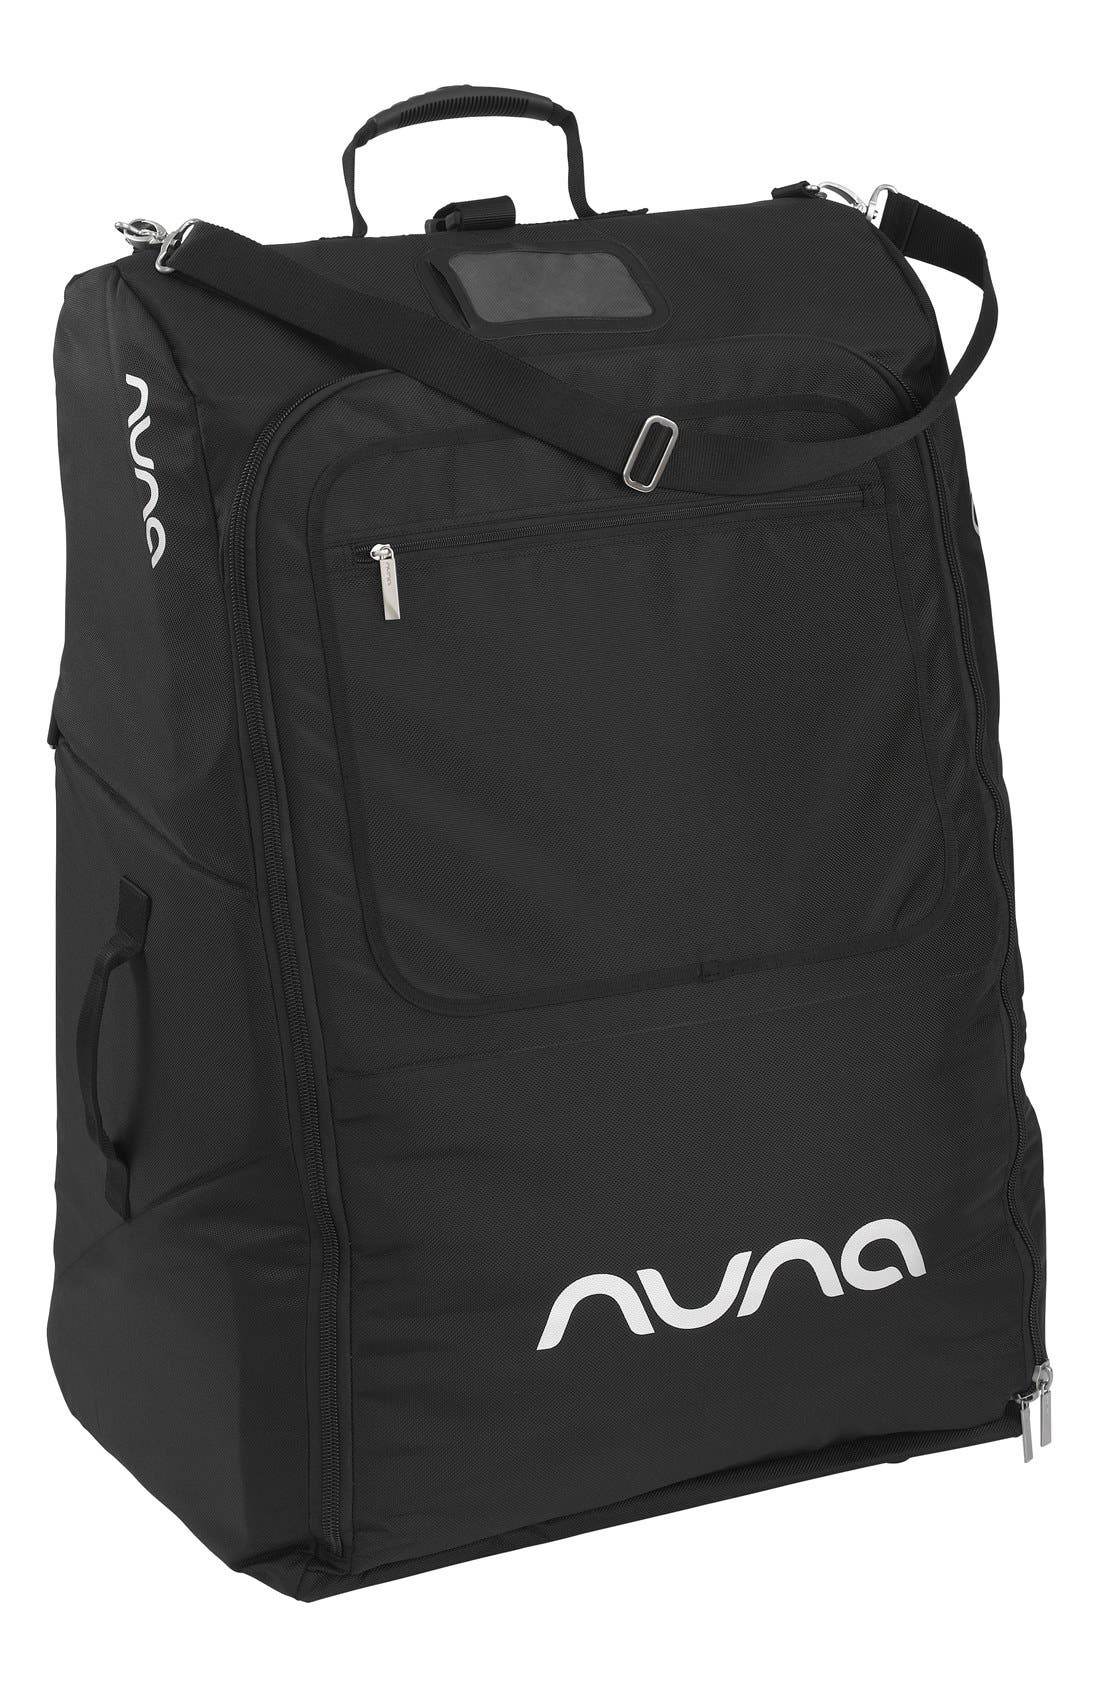 nuna Stroller Transport Bag